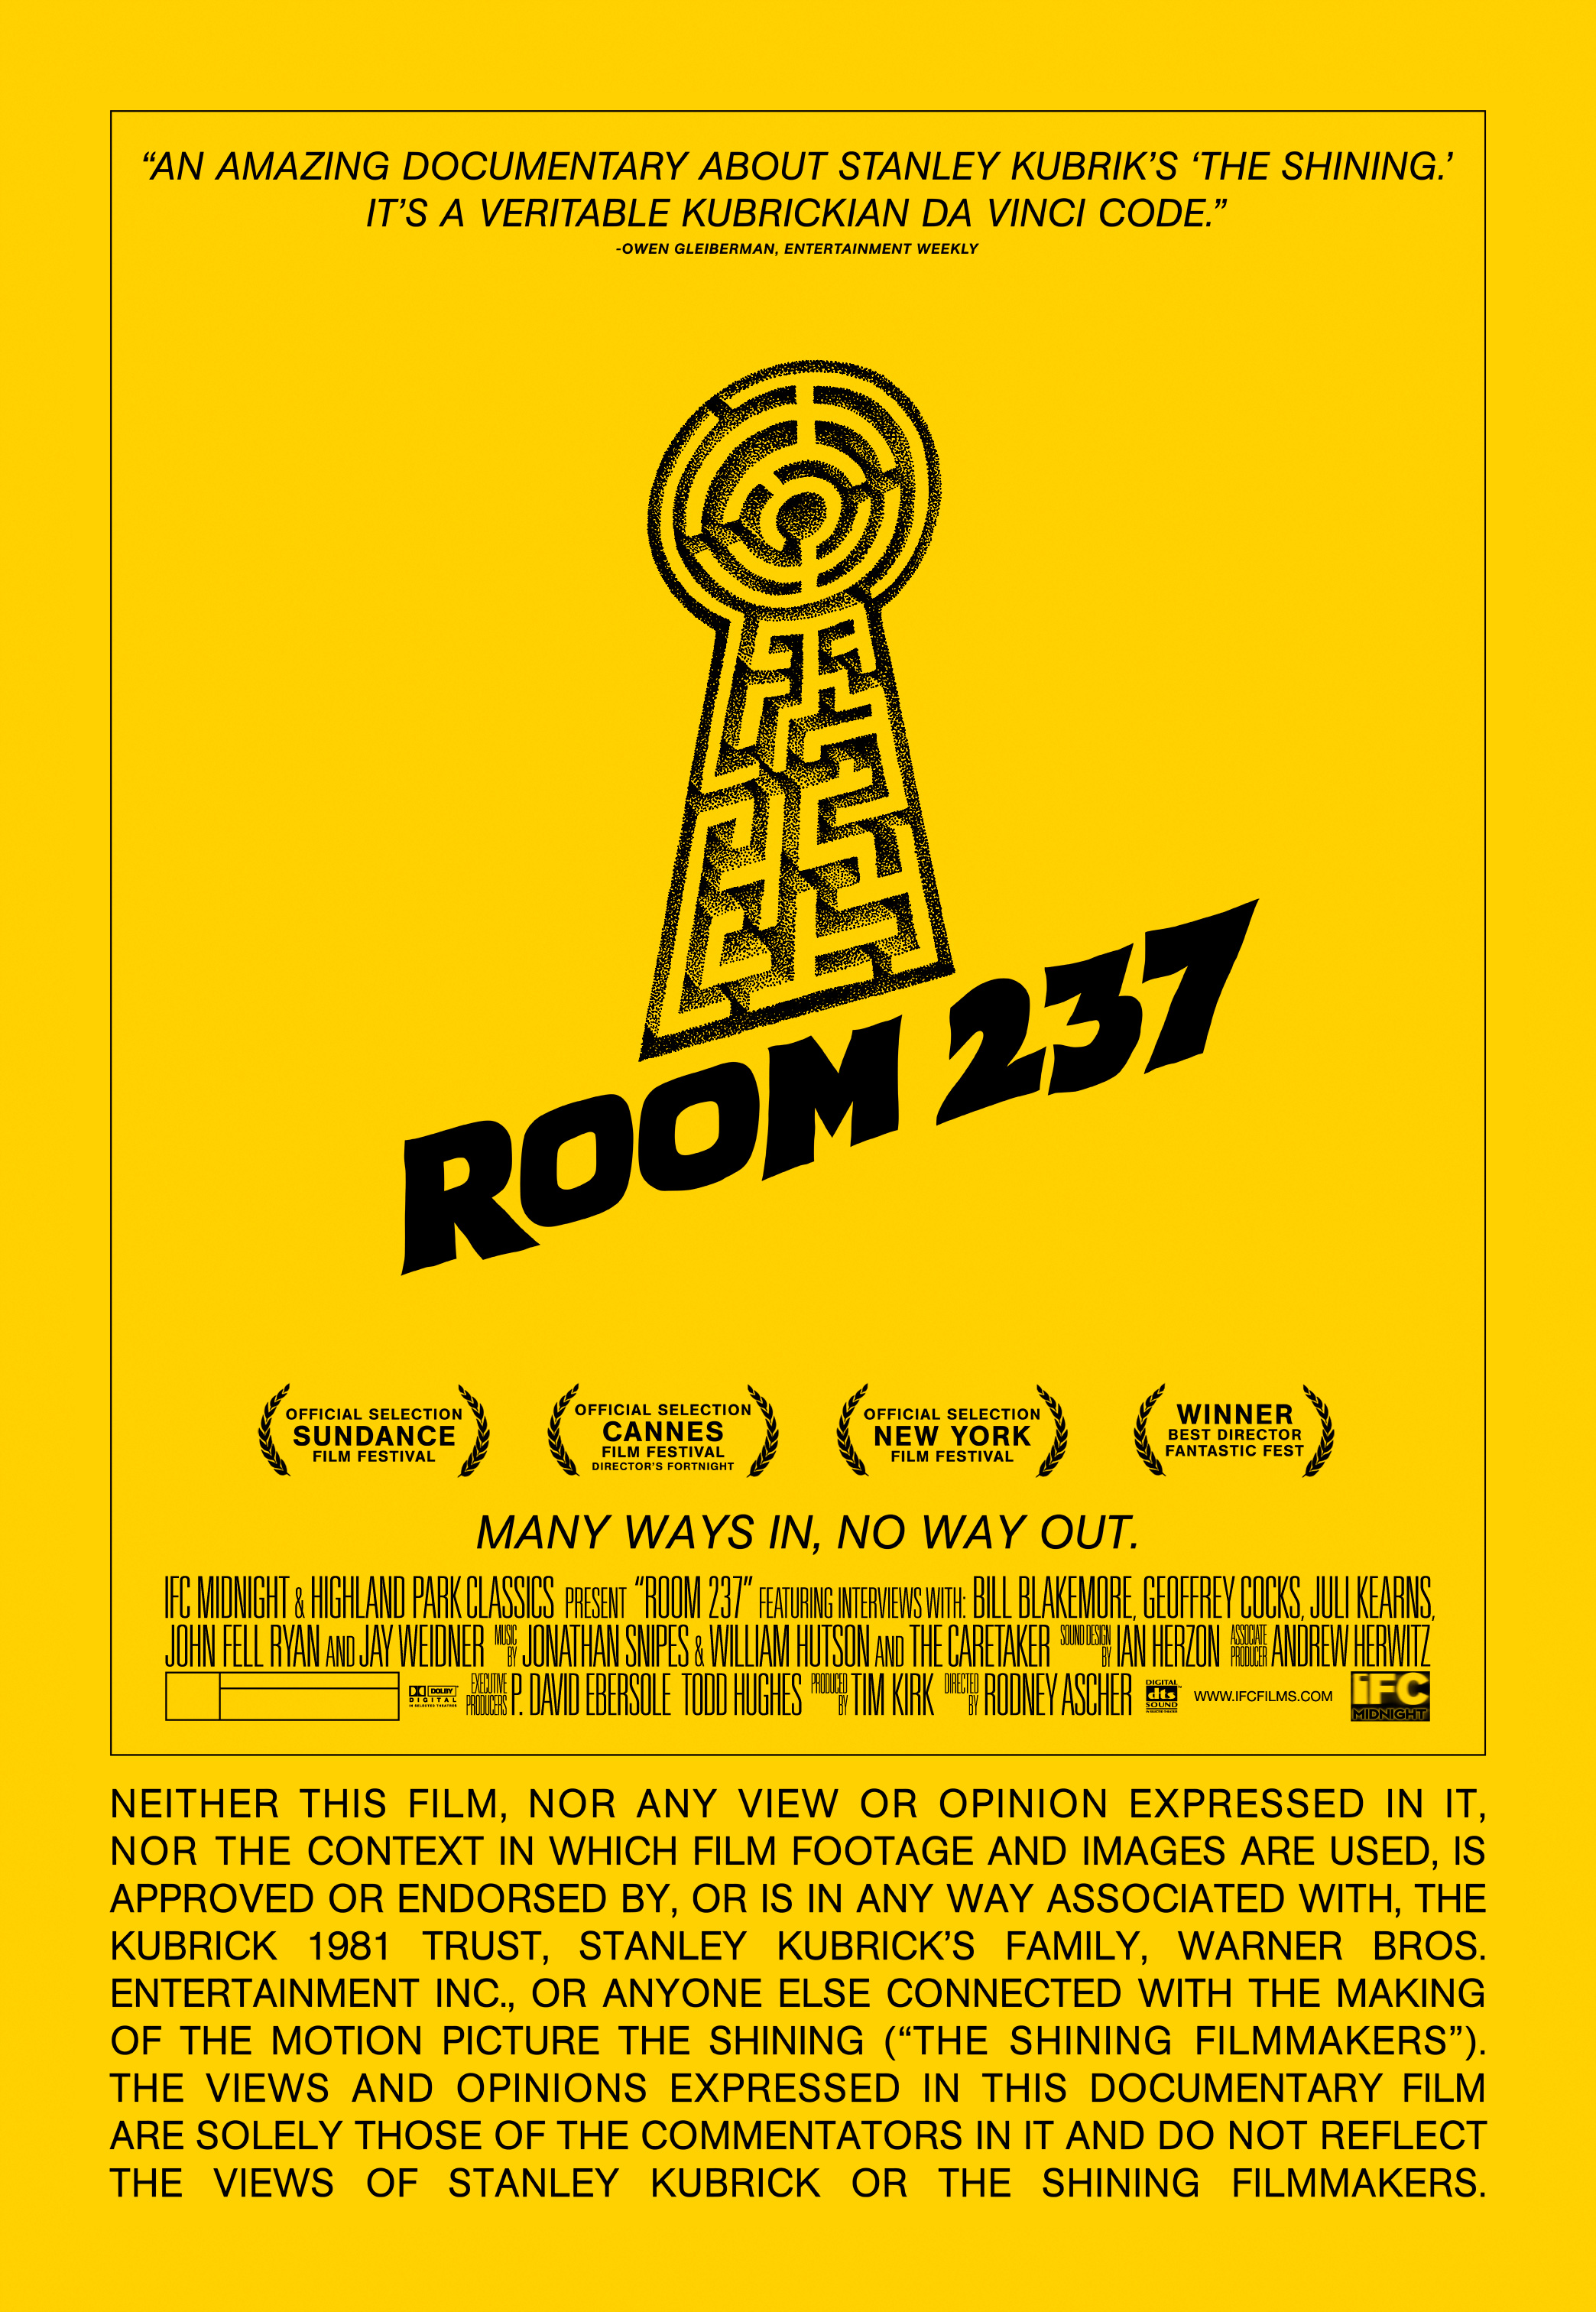 ROOOS 70 BOD final V1 Room 237 Coming To New York March 29